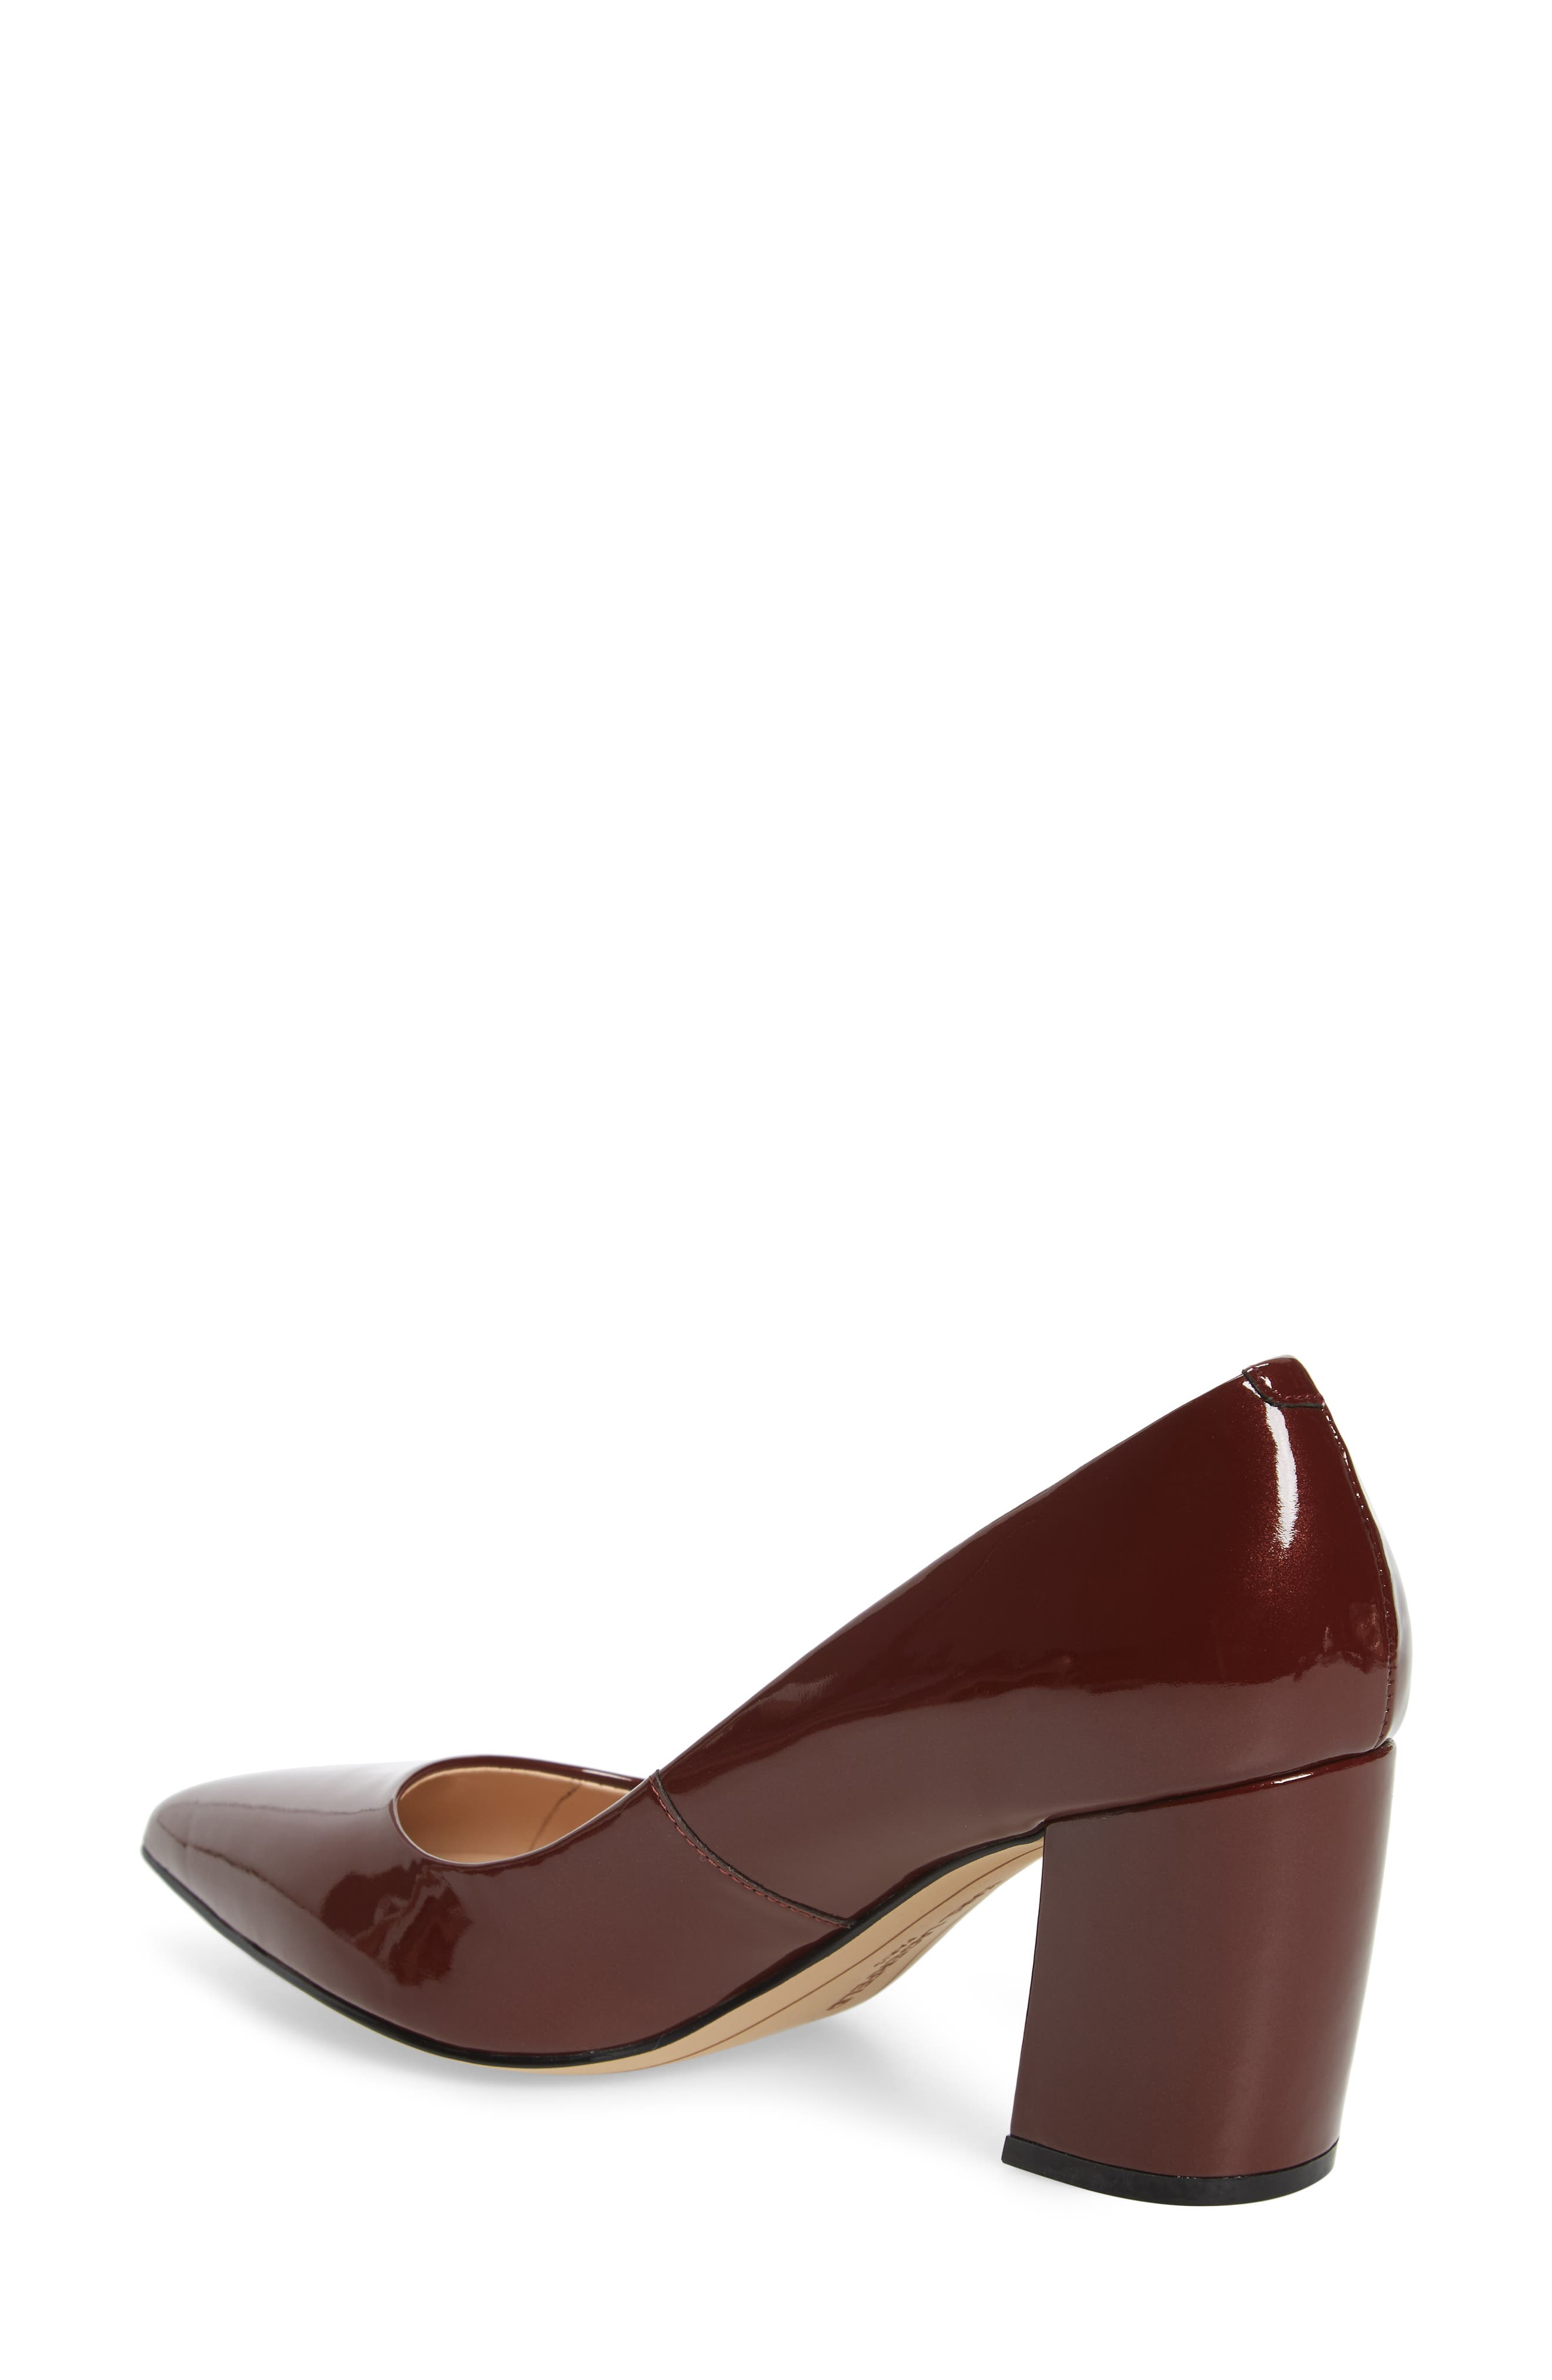 Addie Pump,                             Alternate thumbnail 2, color,                             BURGUNDY PATENT LEATHER